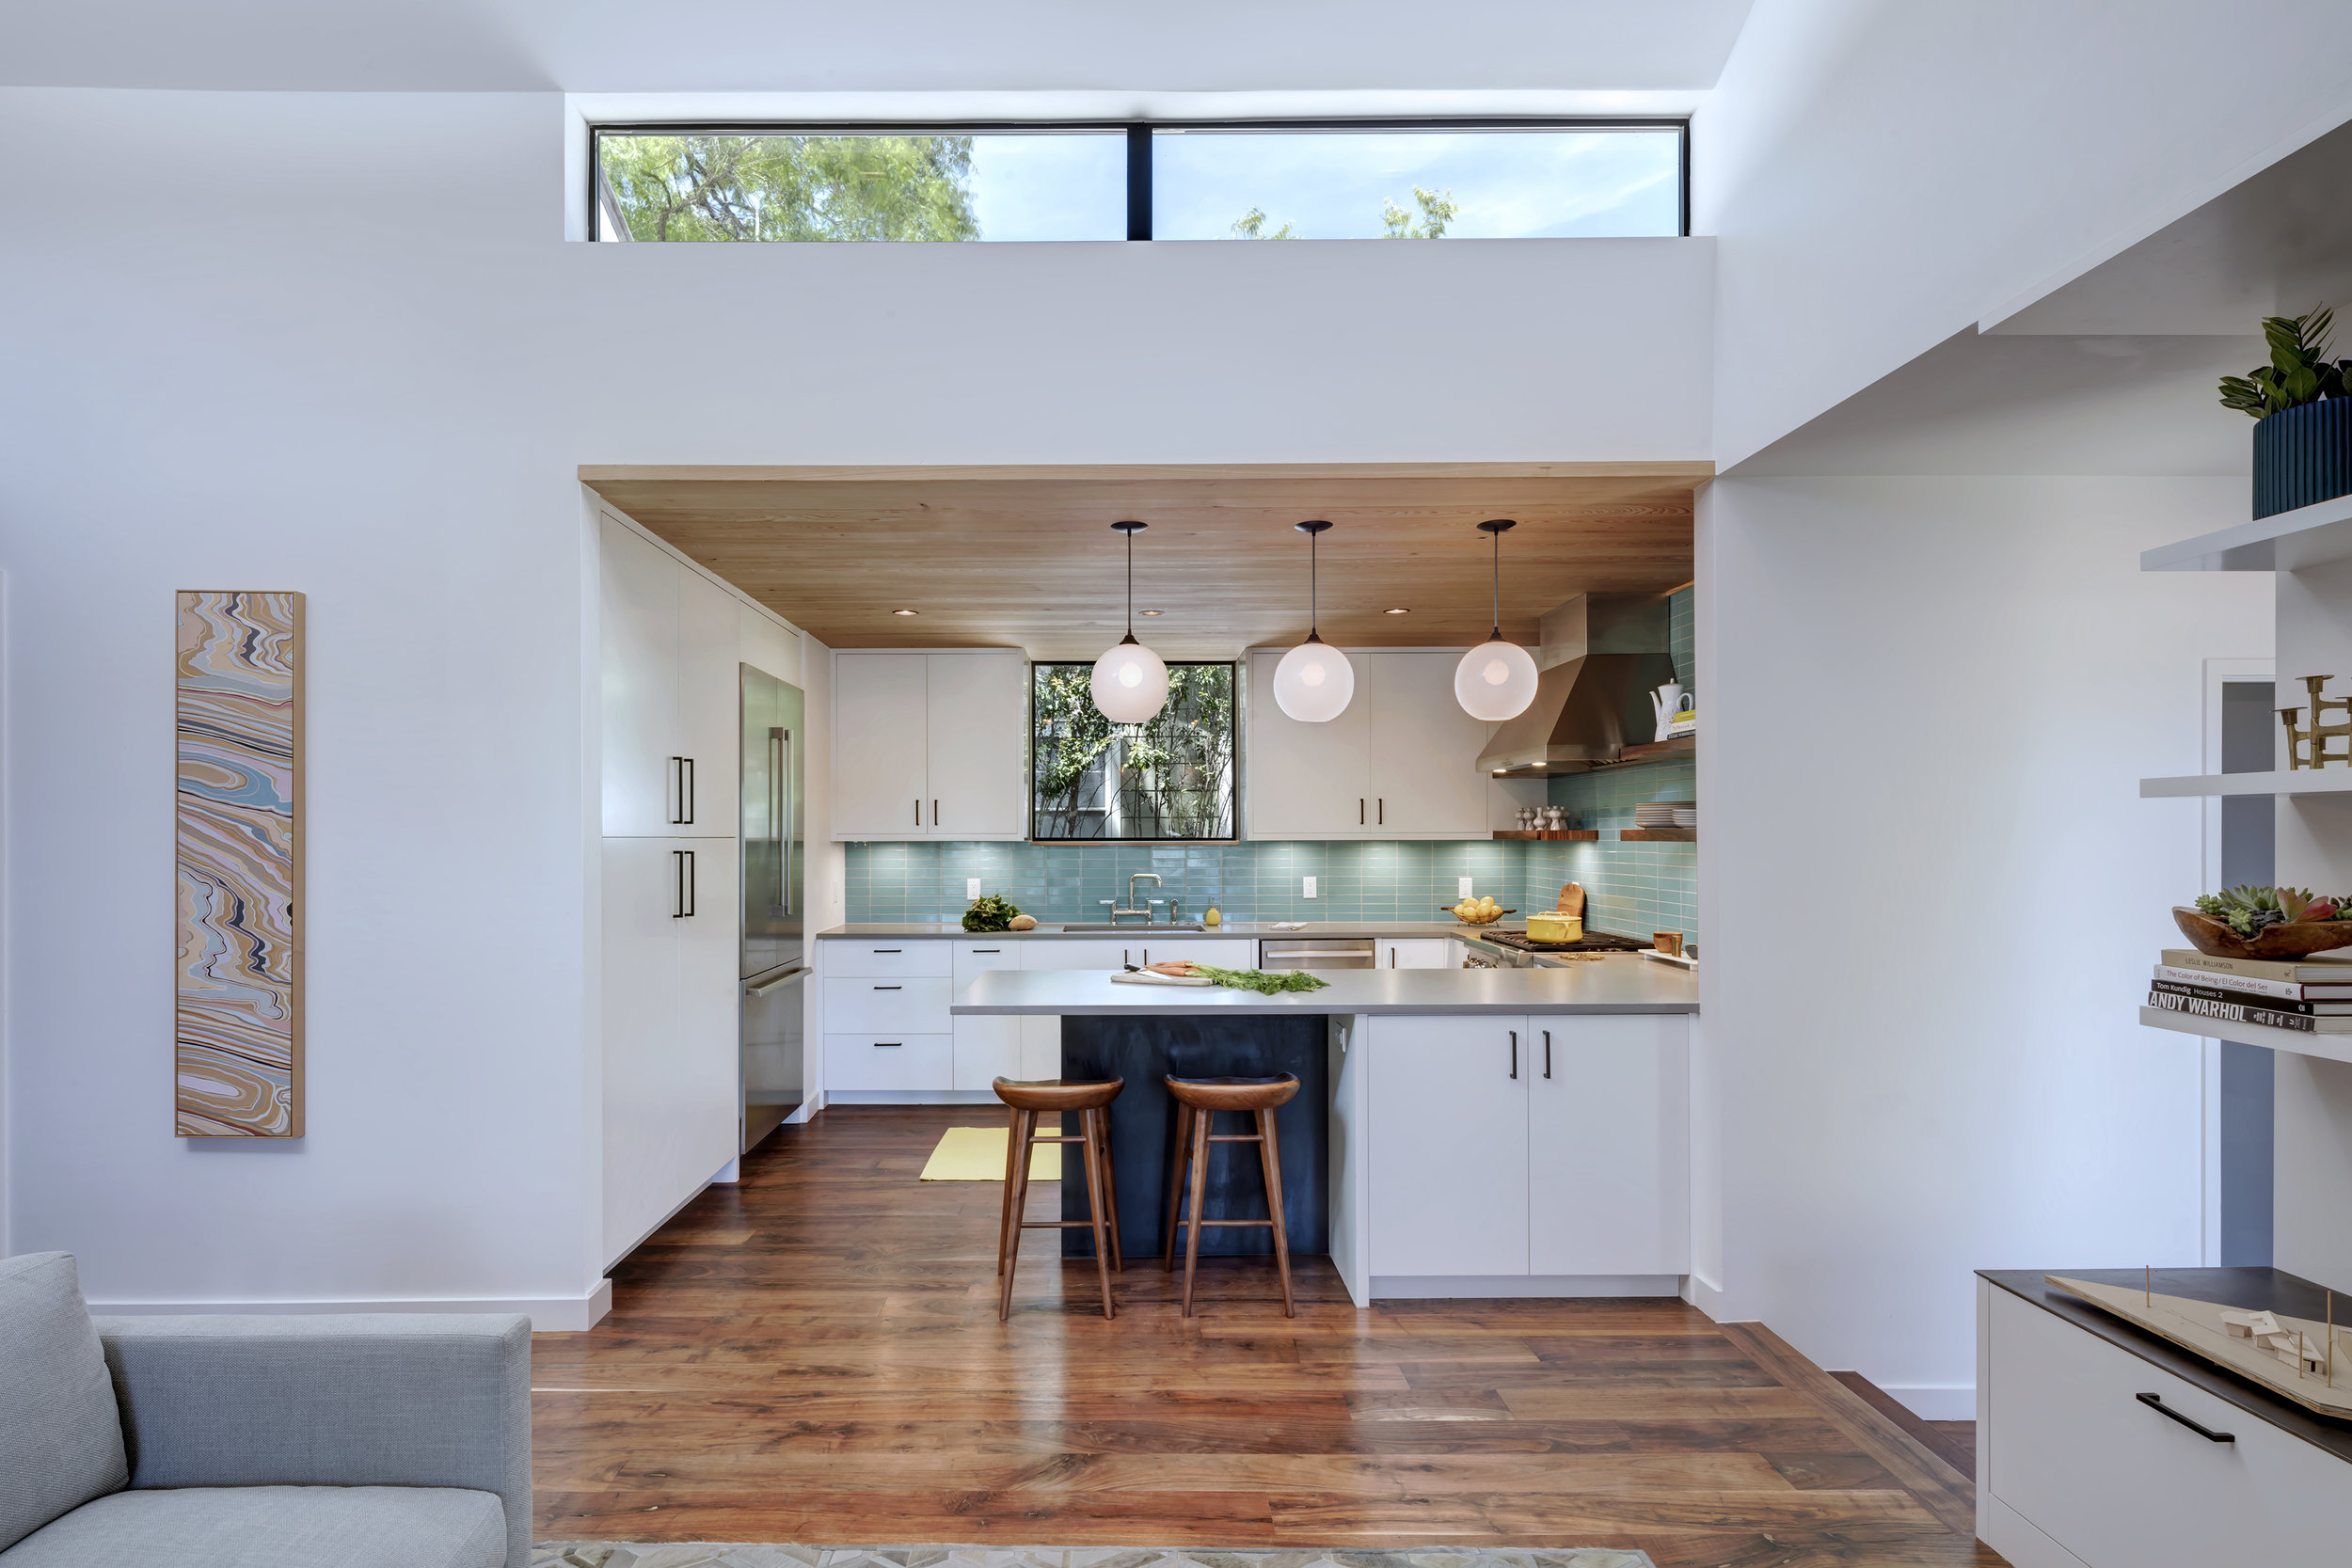 Interlock House by Matt Fajkus MF Architecture_Photo 10 by Charles Davis Smith.jpg